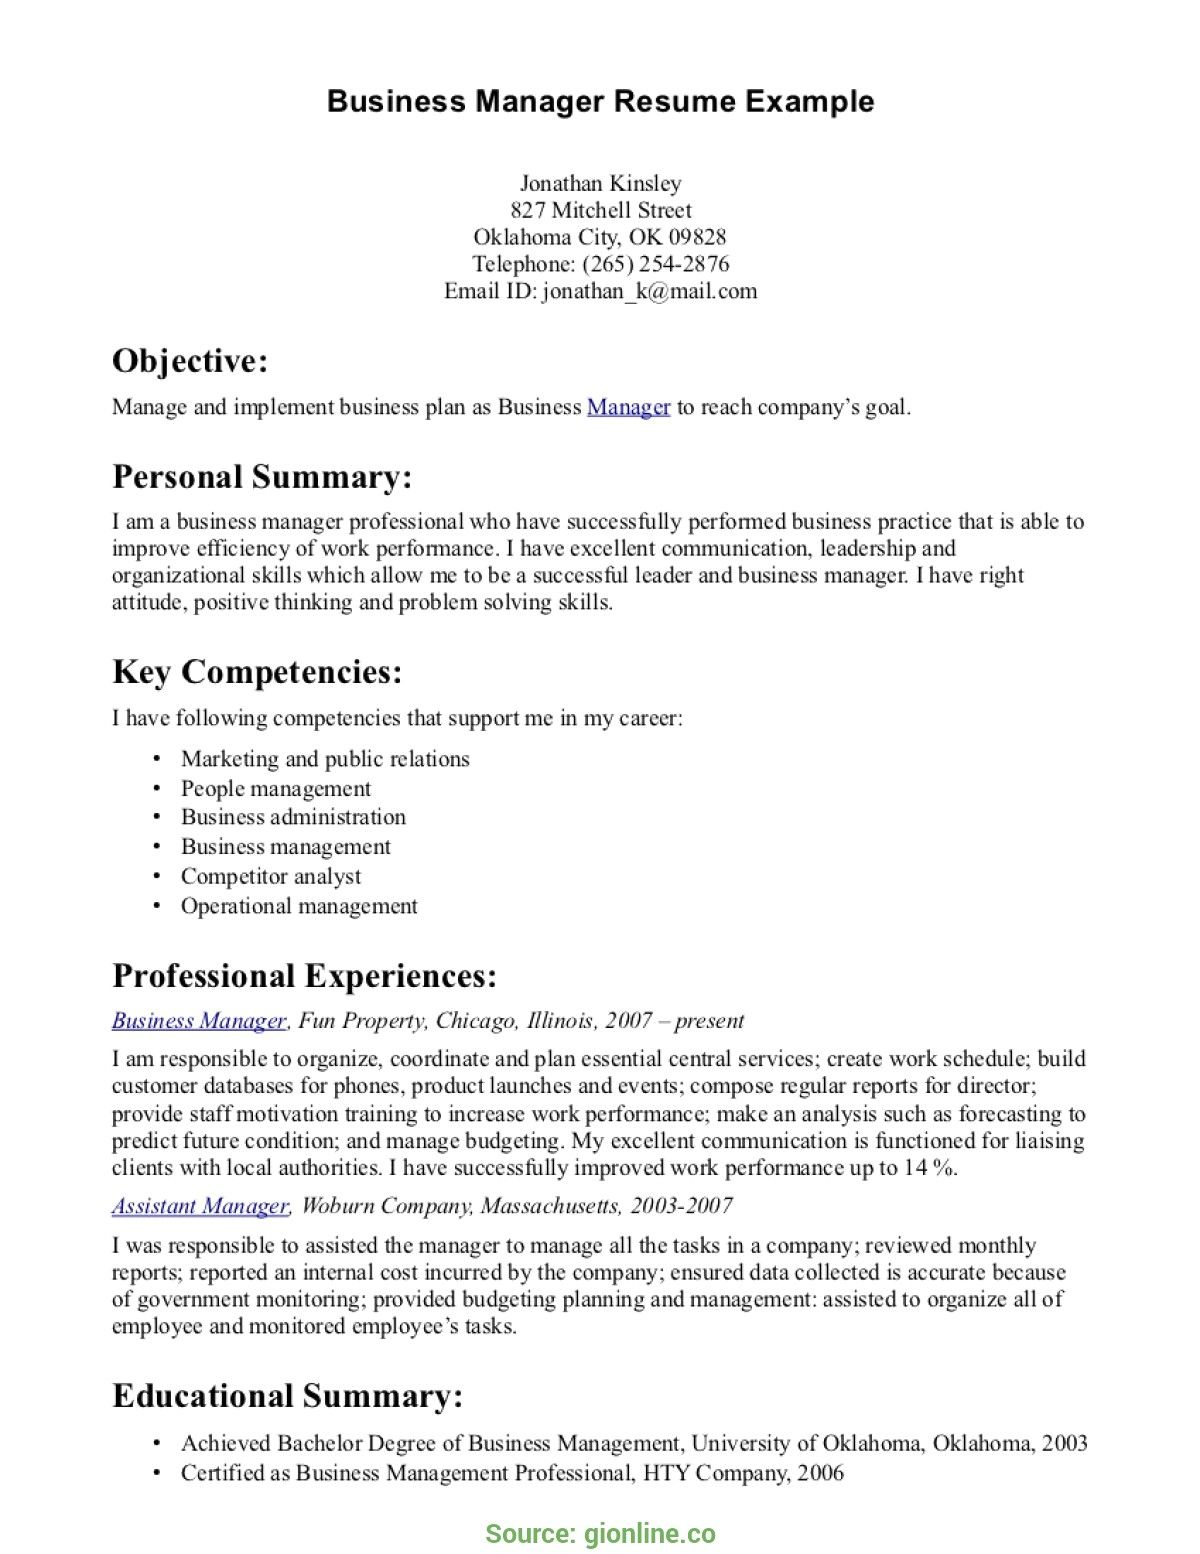 resume examples business management template objective upholstery job description for Resume Business Management Resume Objective